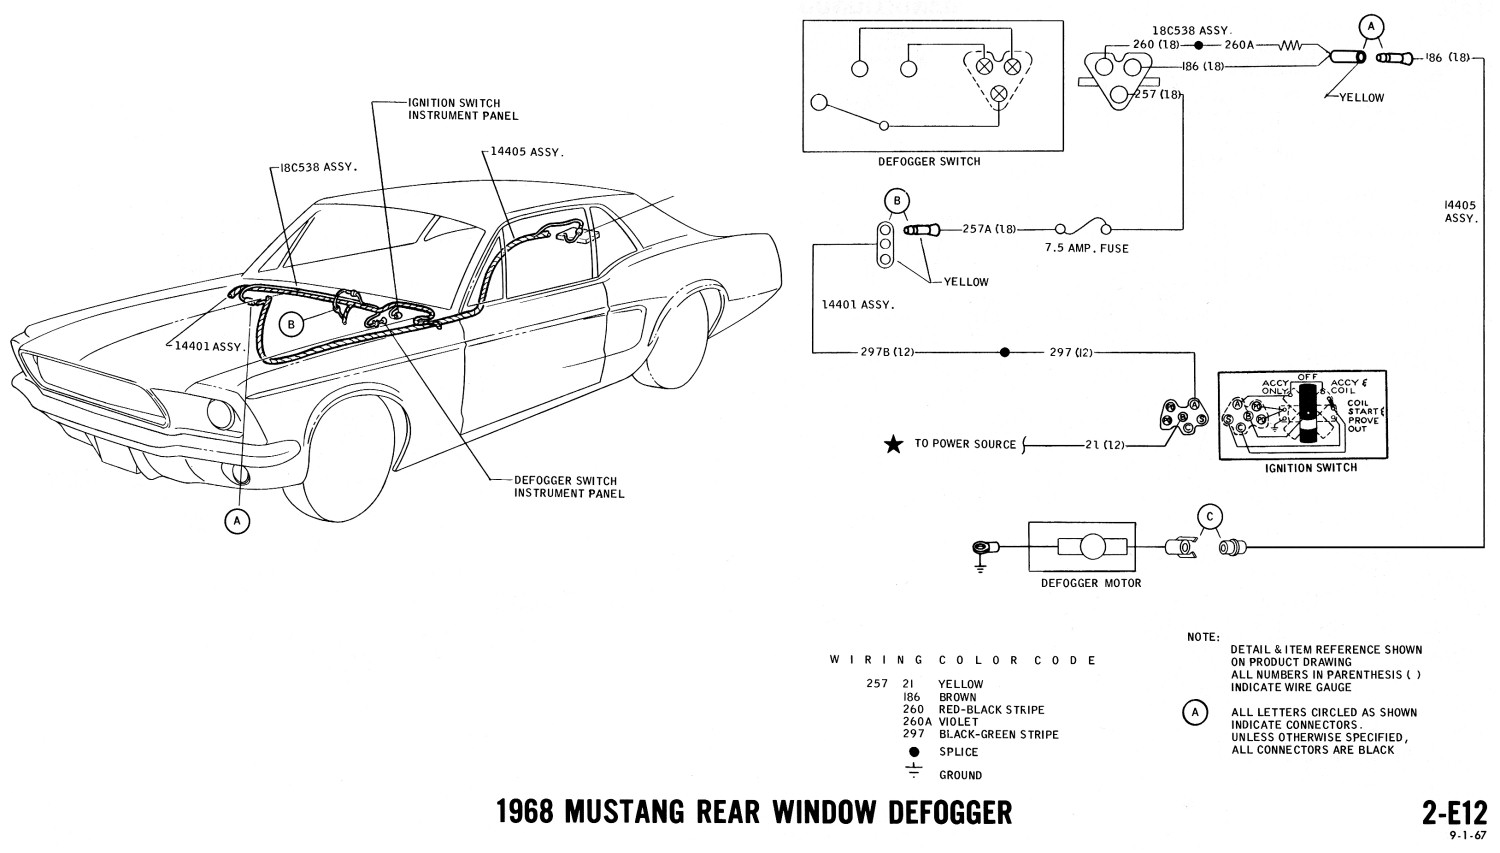 1968 Mustang Wiring Diagrams And Vacuum Schematics Average Joe 85 Steering Column Diagram Ford Truck Rear Window Defrost